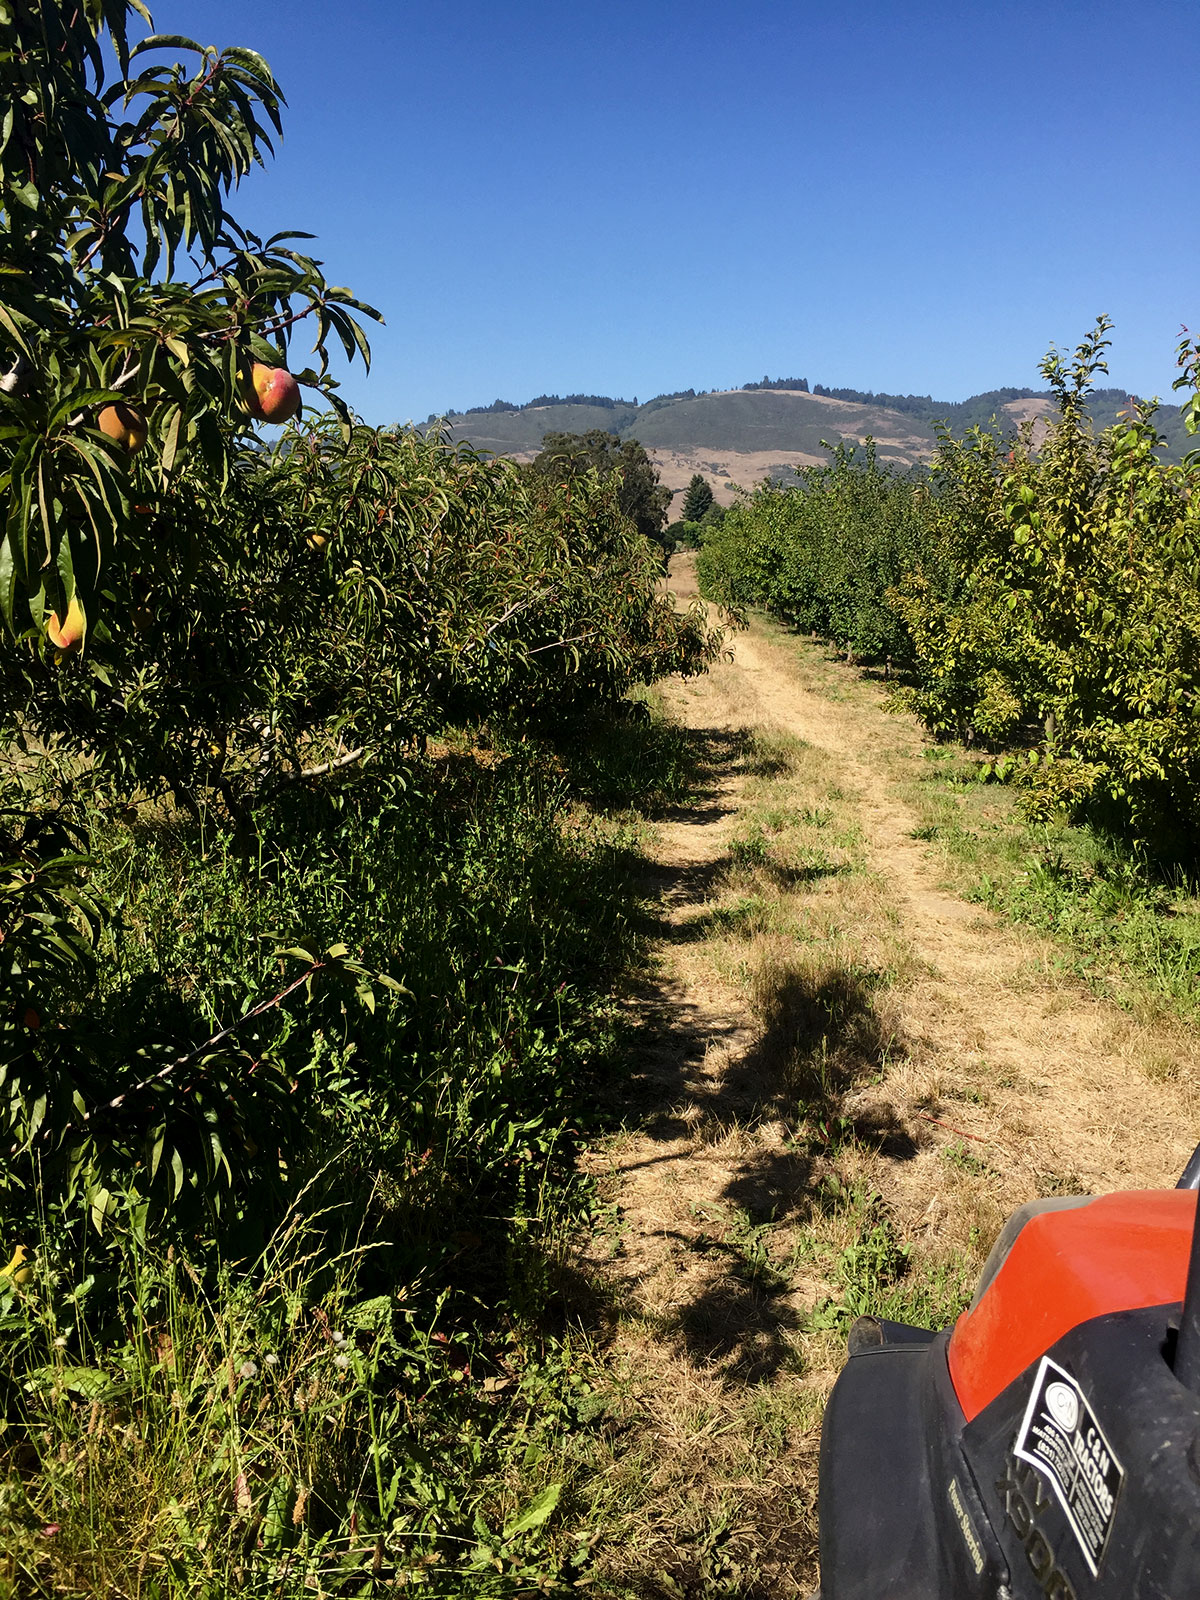 Me and My Trusty ATV Mabel Have Been Doing Some Summer Pruning in the Orchard